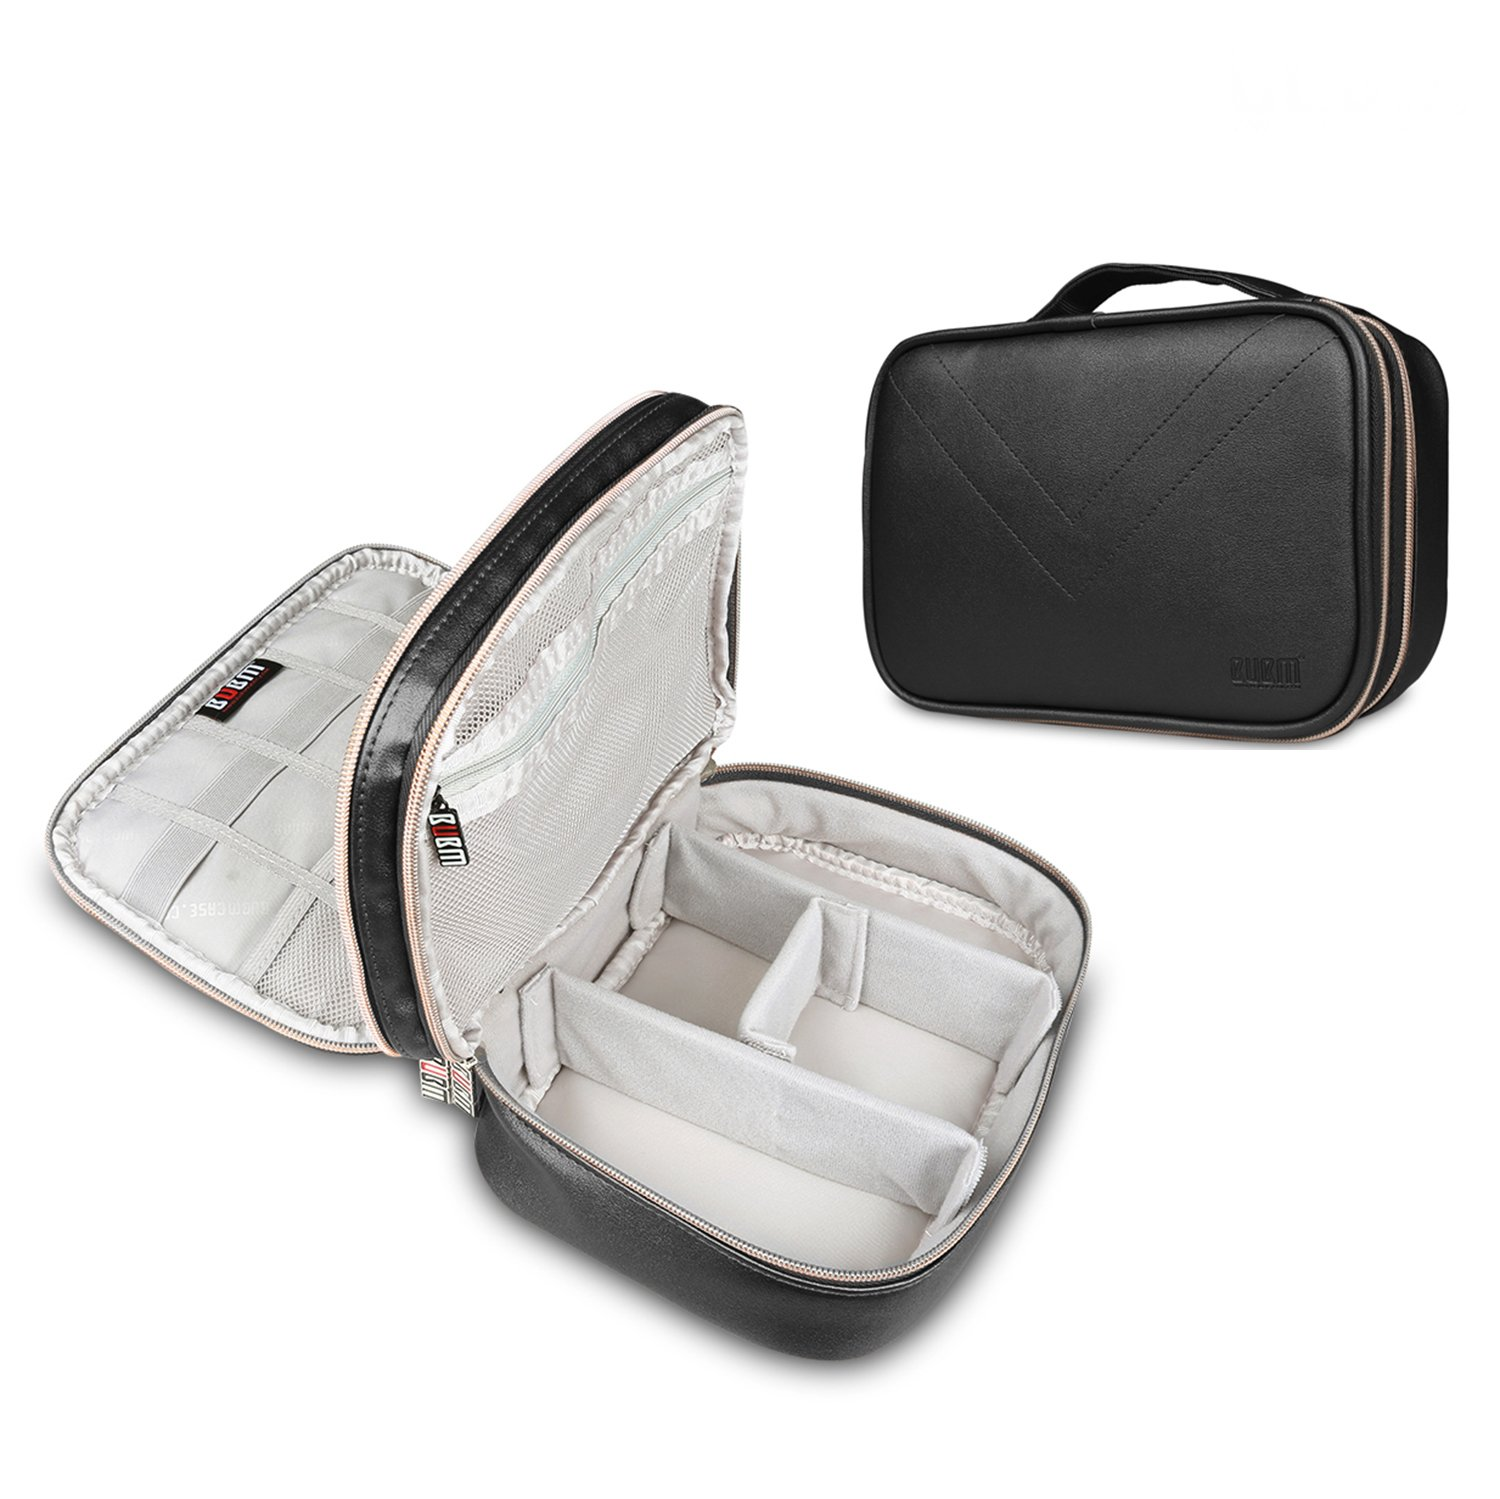 Electronics Organizer Bag Portable Travel Organizer Storage Carrying Bag for USB Cables,Chargers,Power Bank,iPad Mini